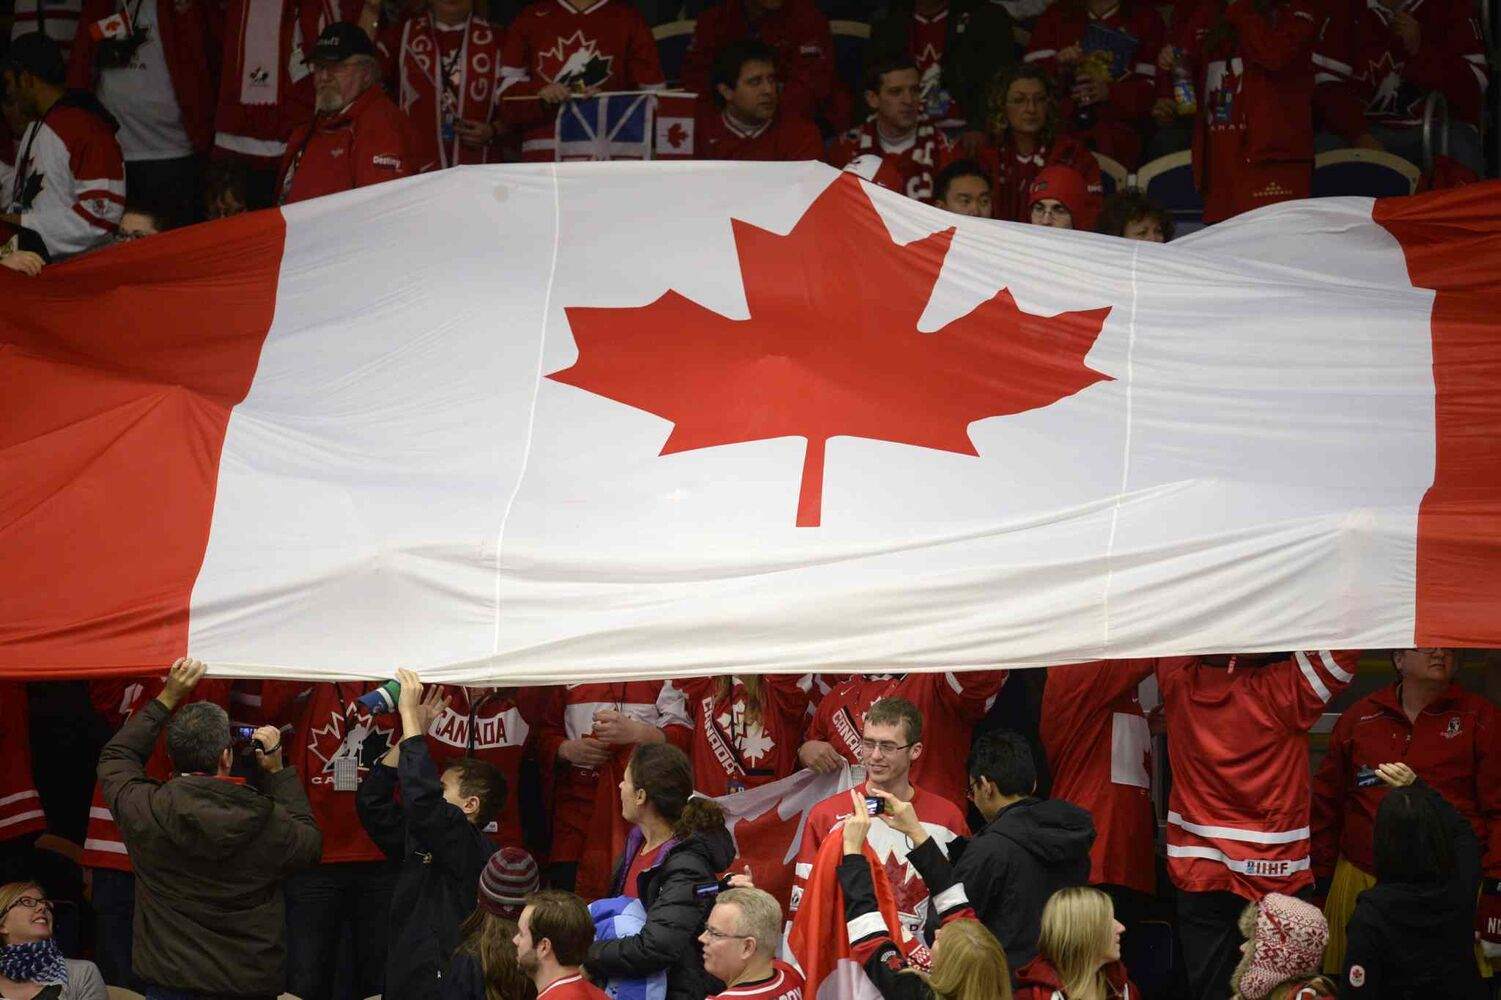 Fans hold up a Canadian flag at the IIHF World Junior Hockey Championship game again the United States Tuesday. (Frank Gunn / The Canadian Press)